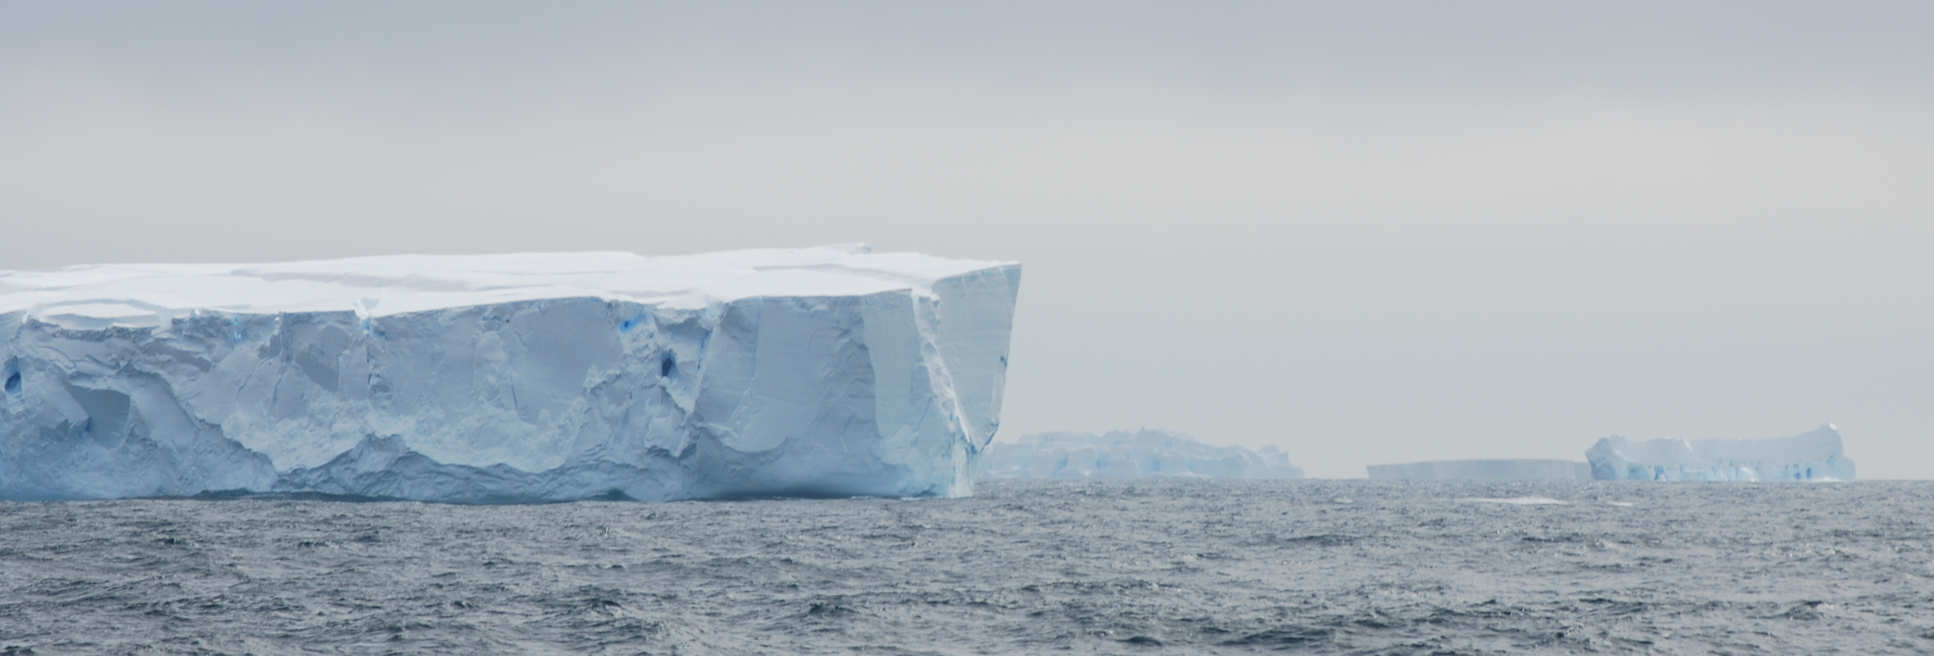 Photo of icebergs in the Southern Ocean, taken on expedition near the Wilkes Subglacial Basin